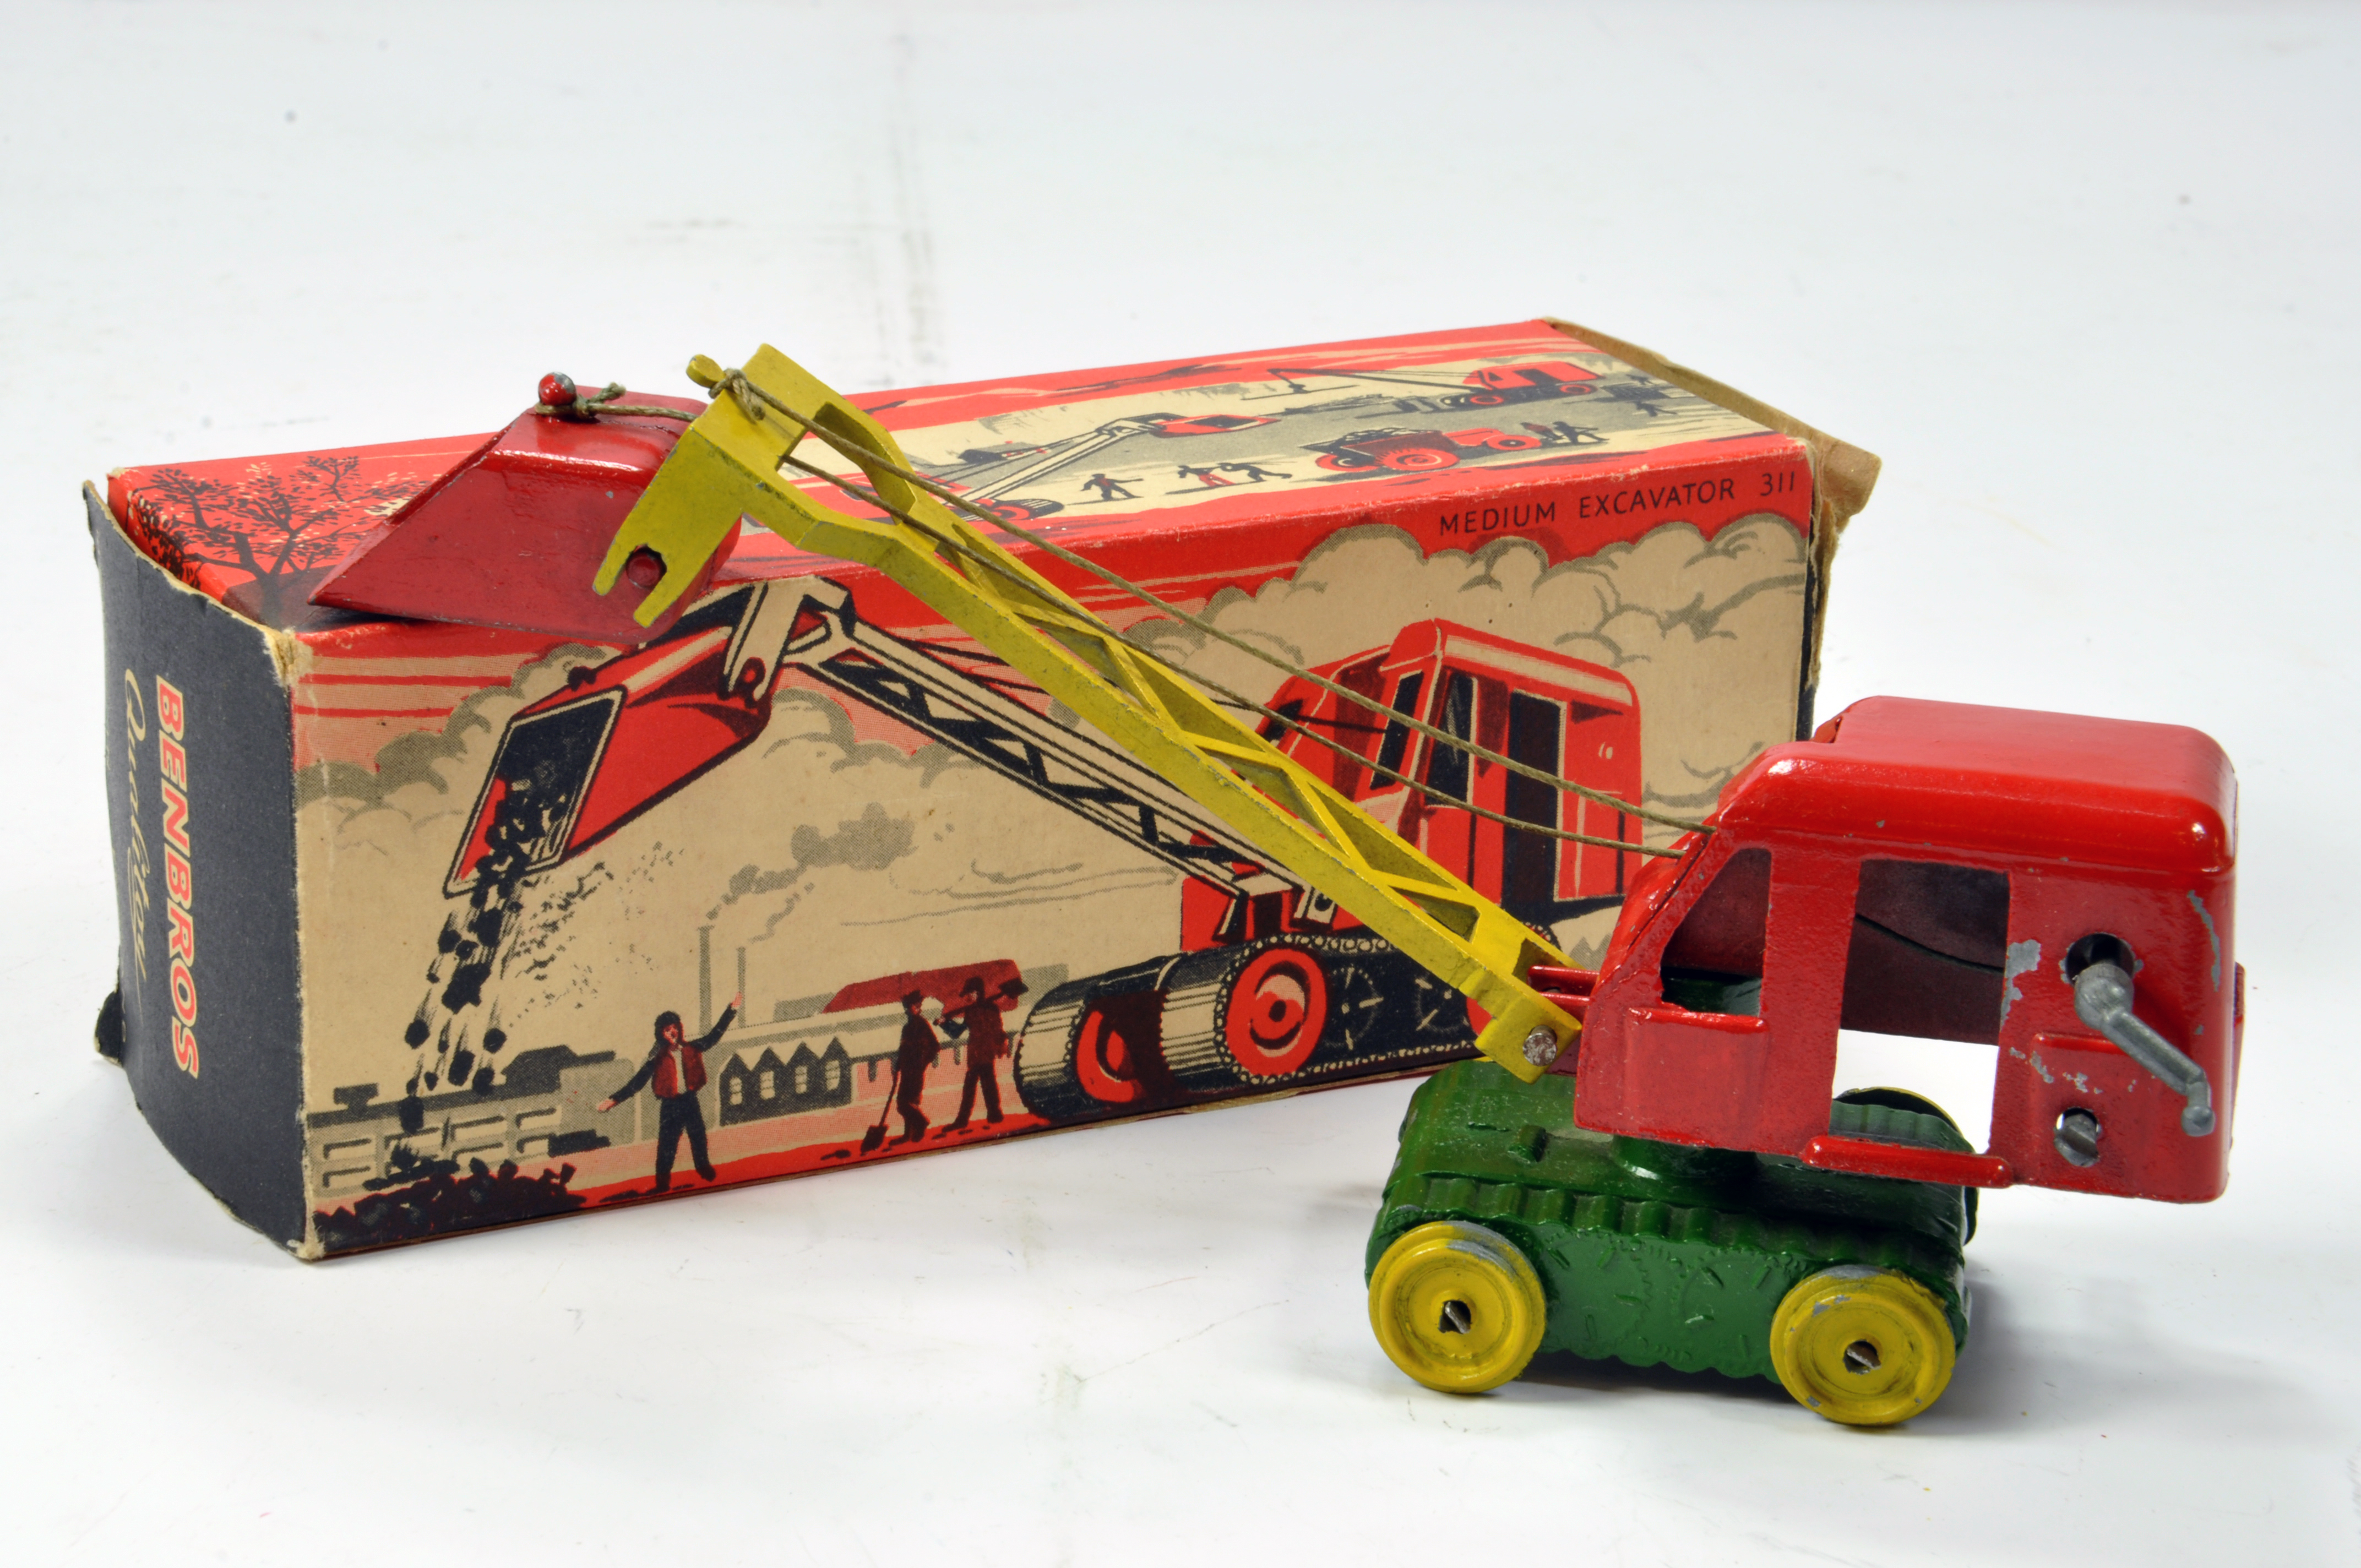 Lot 968 - Benbros No. 311 early issue Medium Excavator in red, green and yellow with bucket. Lacks Tracks